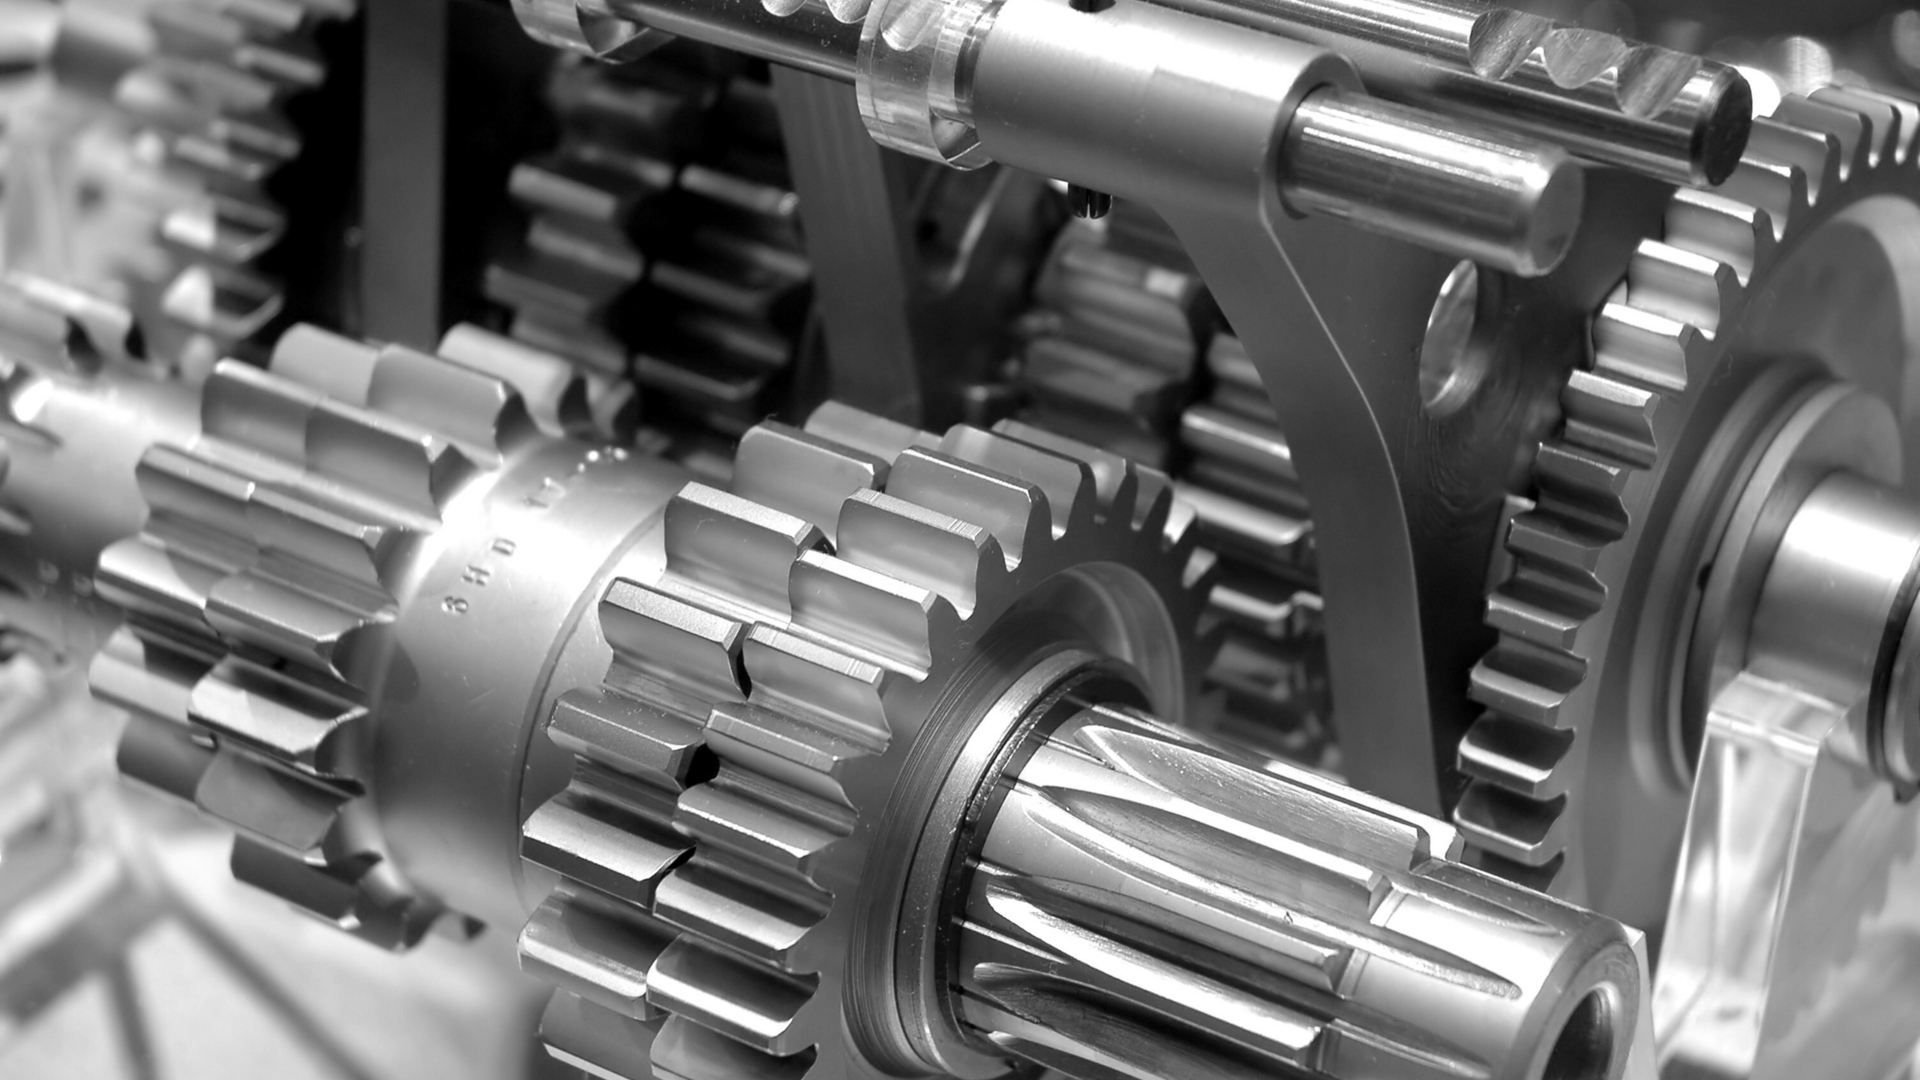 47] Mechanical Engineering Wallpapers HD on WallpaperSafari 1920x1080